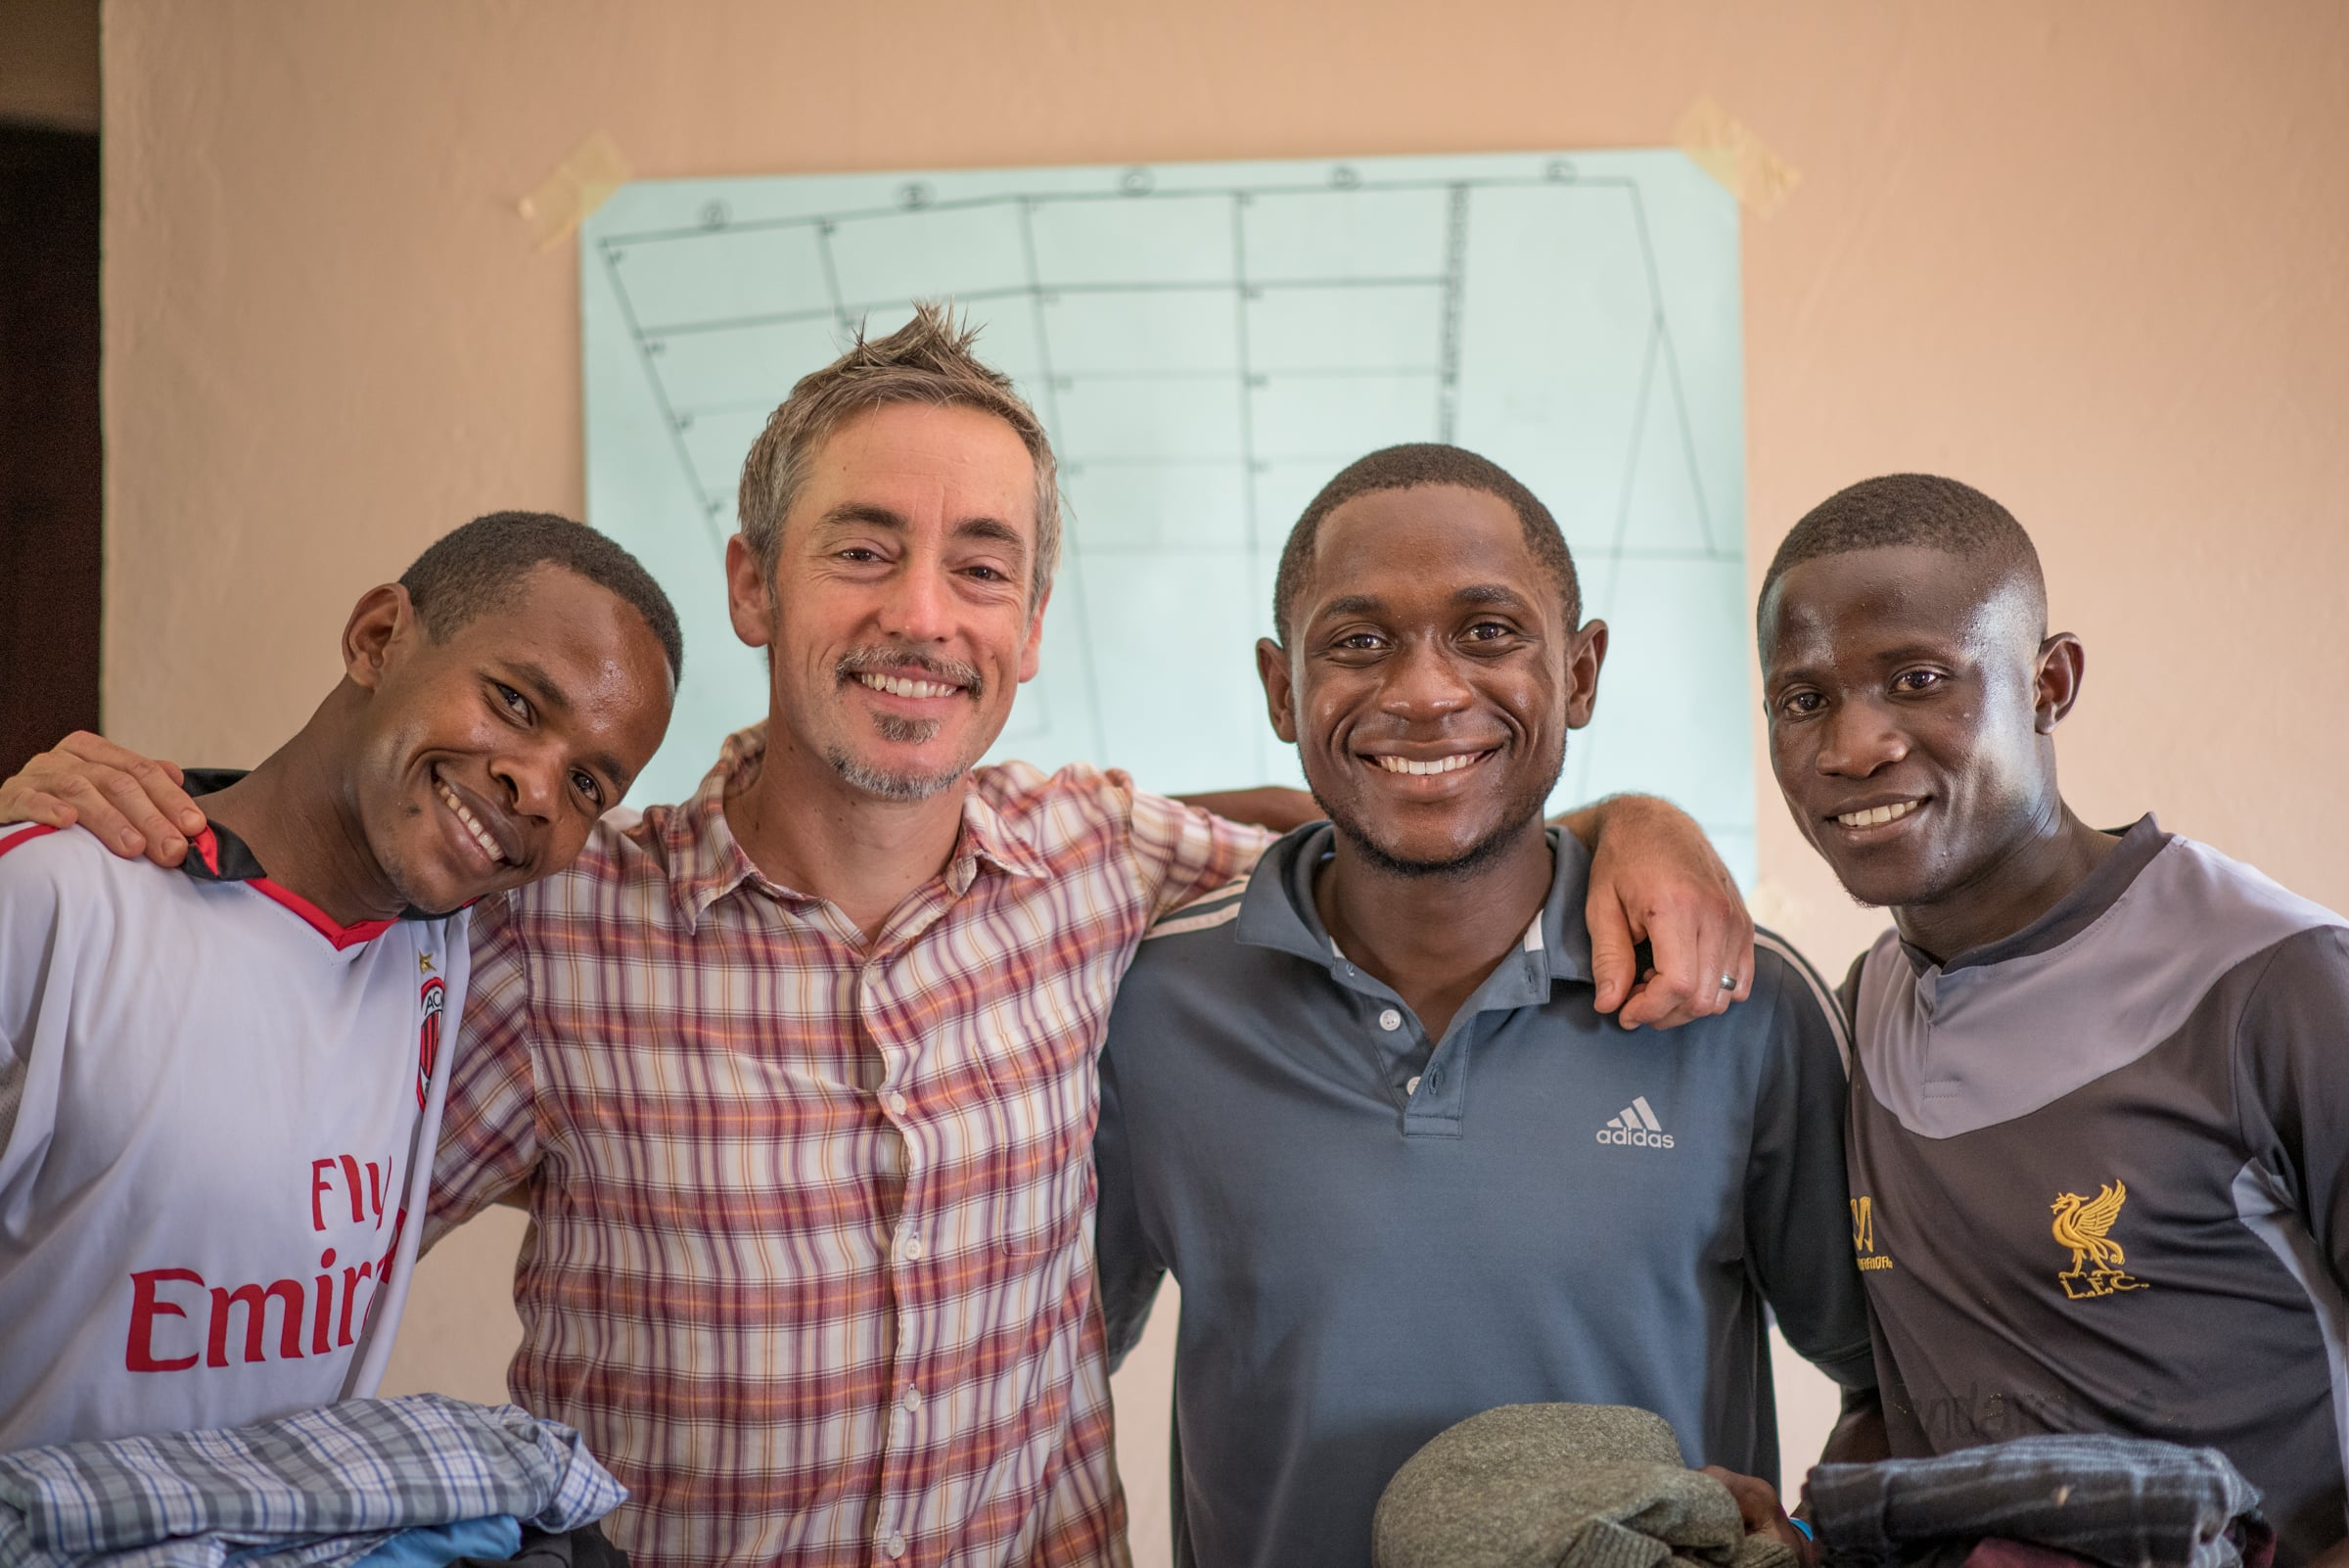 (L-R Simon Peter, Seth Davis, Andrew and Edwin)The bond formed between these men continues to grow. This was right before they set out to Uganda, after receiving several new pairs of work clothes.